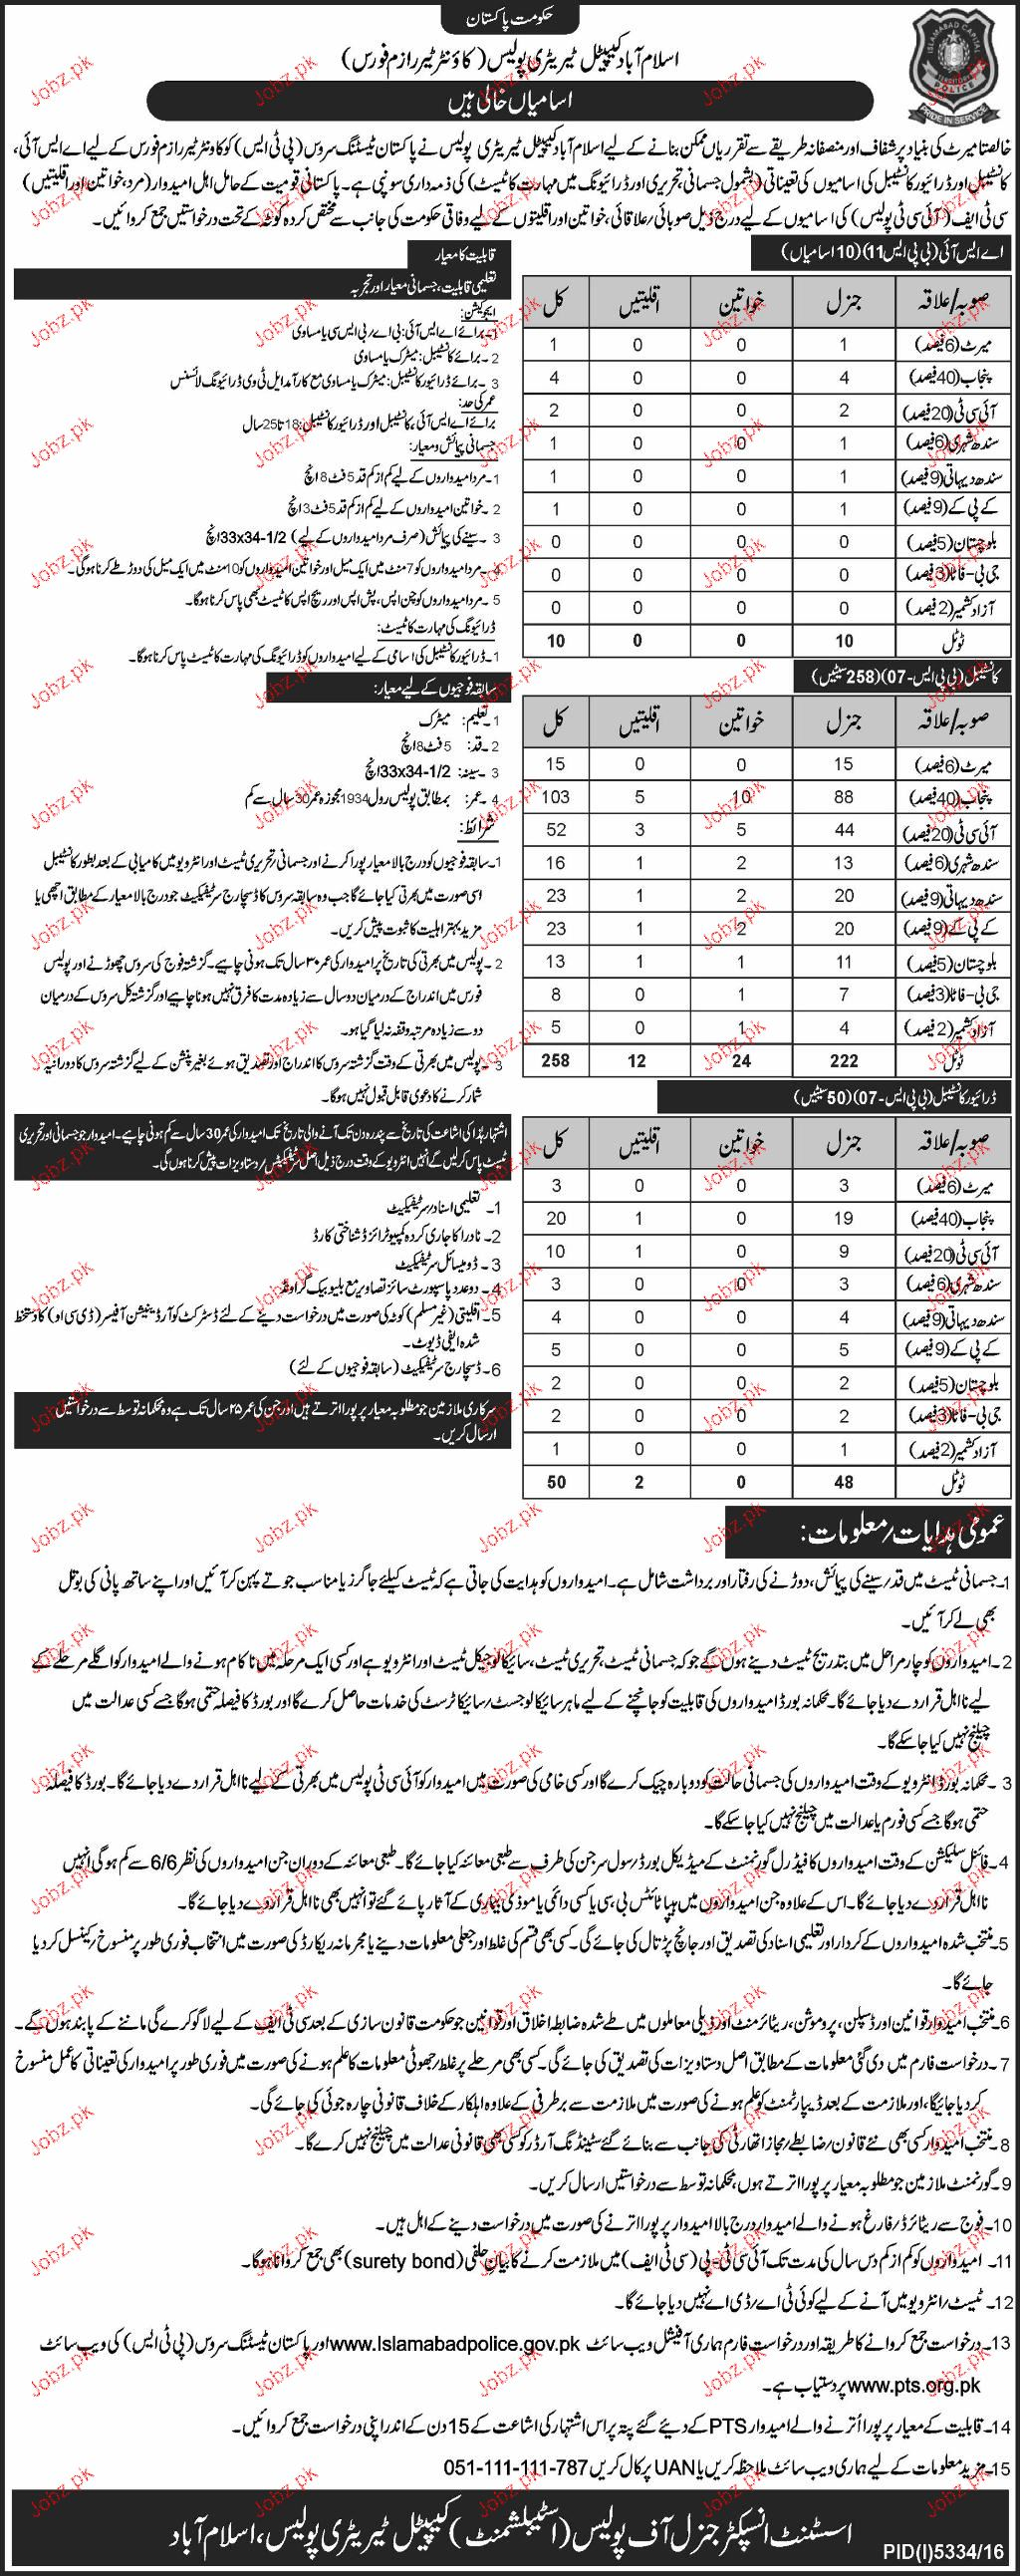 ASI, Police Constables and Drivers Constables Job in Police